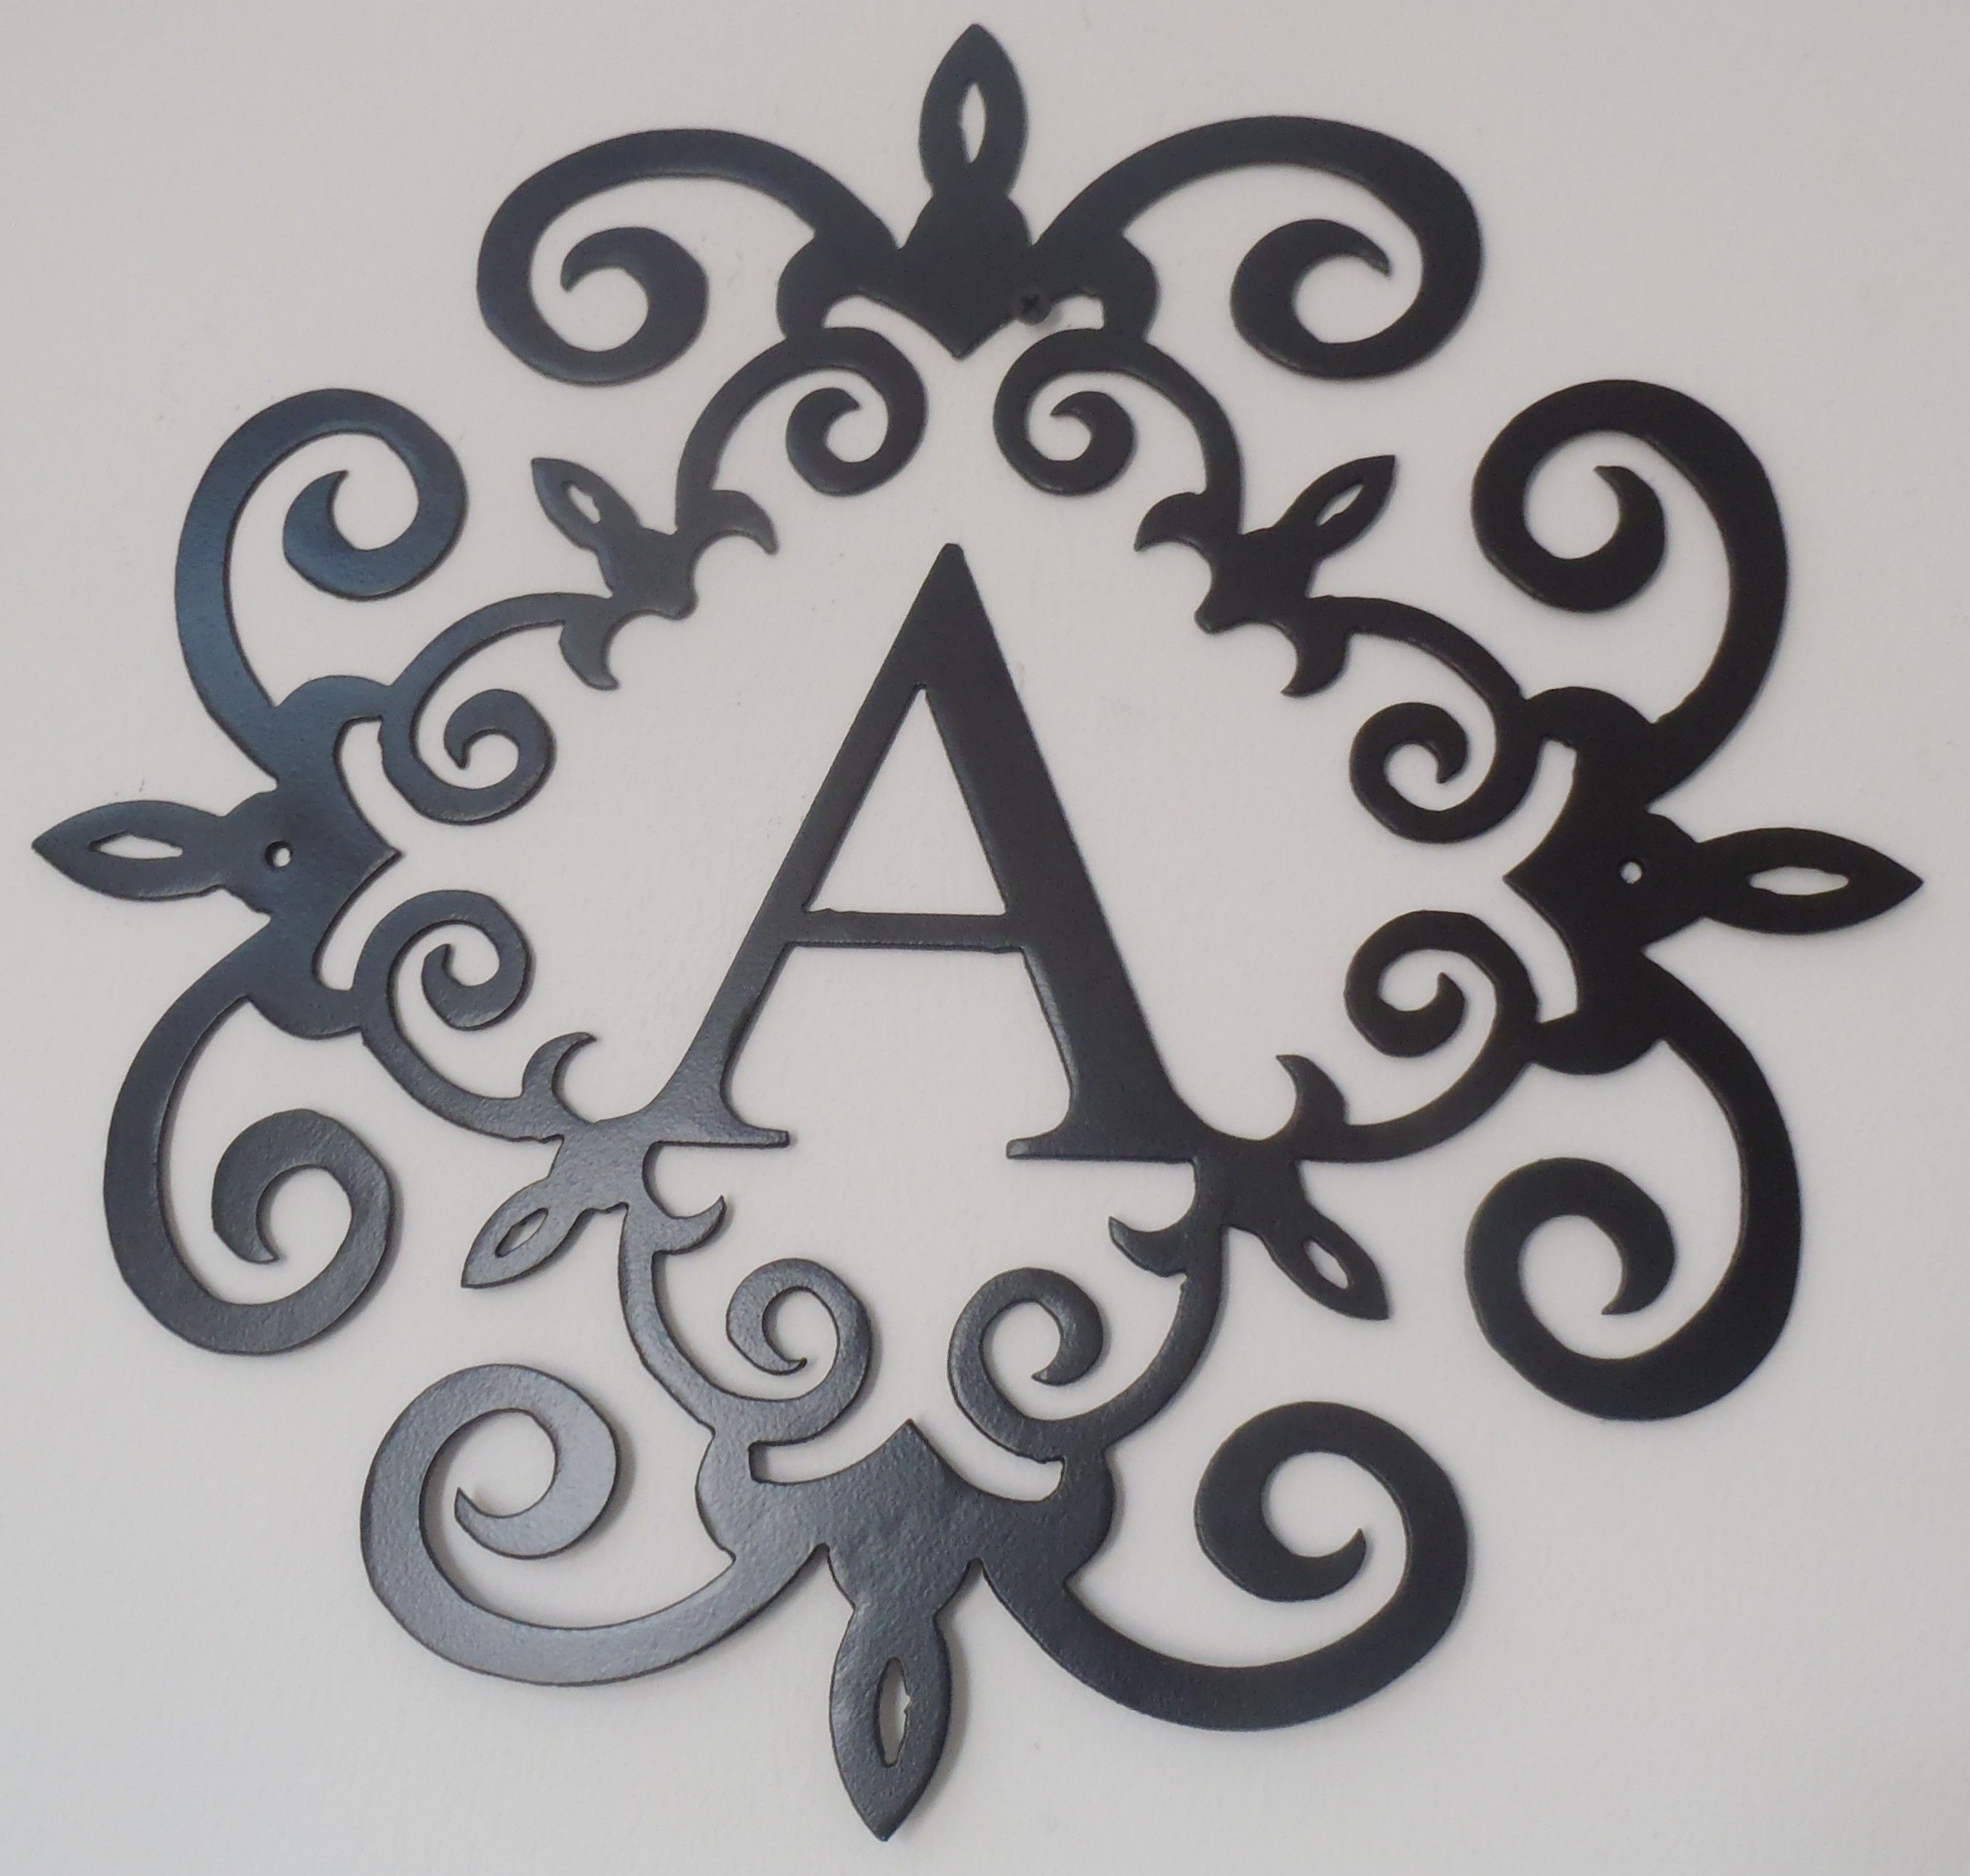 family initial monogram inside a metal scroll with a letter wall decor metal - Letter Wall Decor